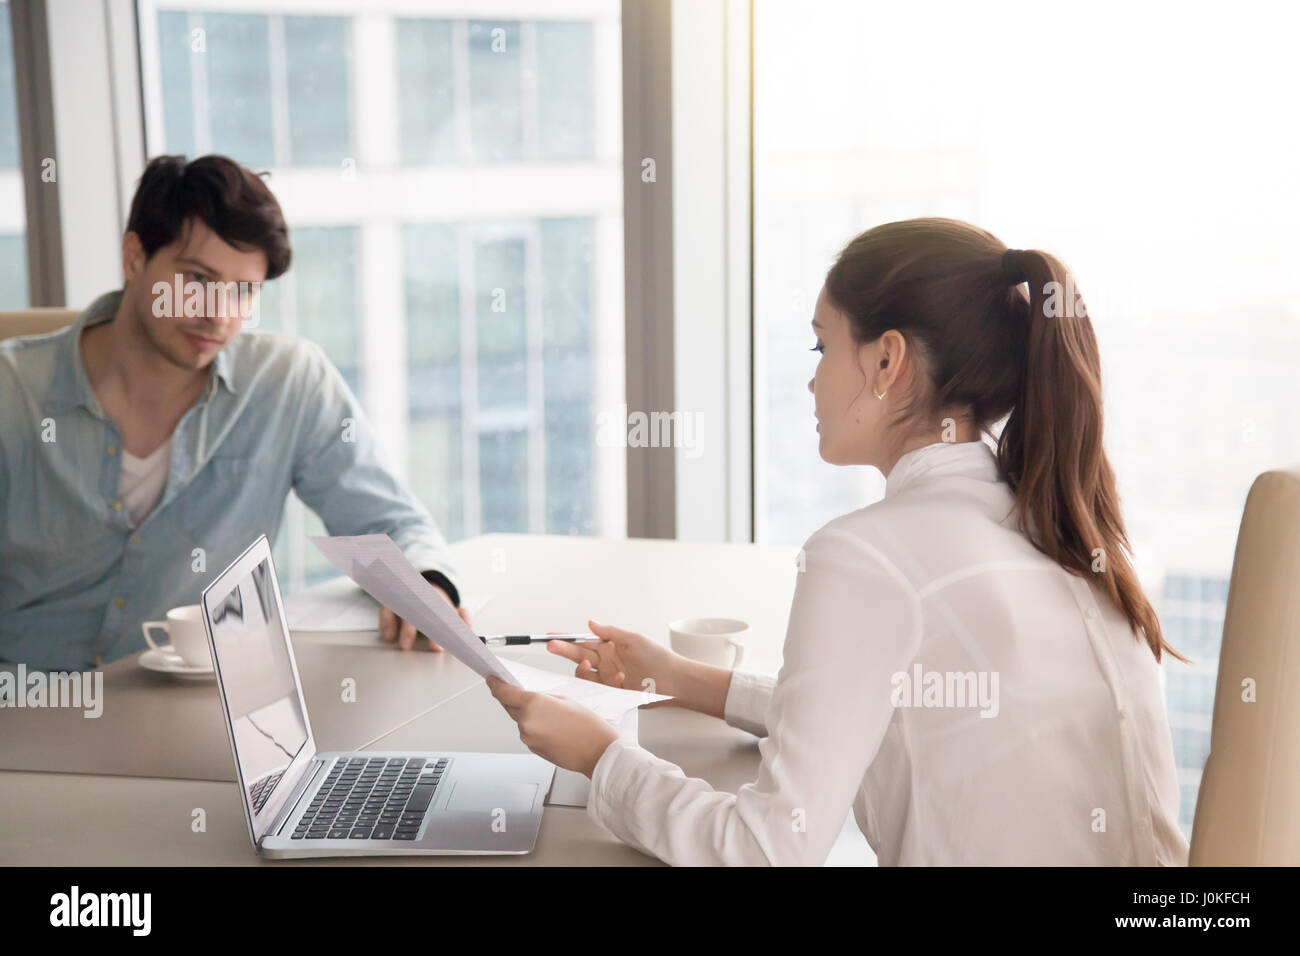 Business meeting, man and woman working on project at office - Stock Image